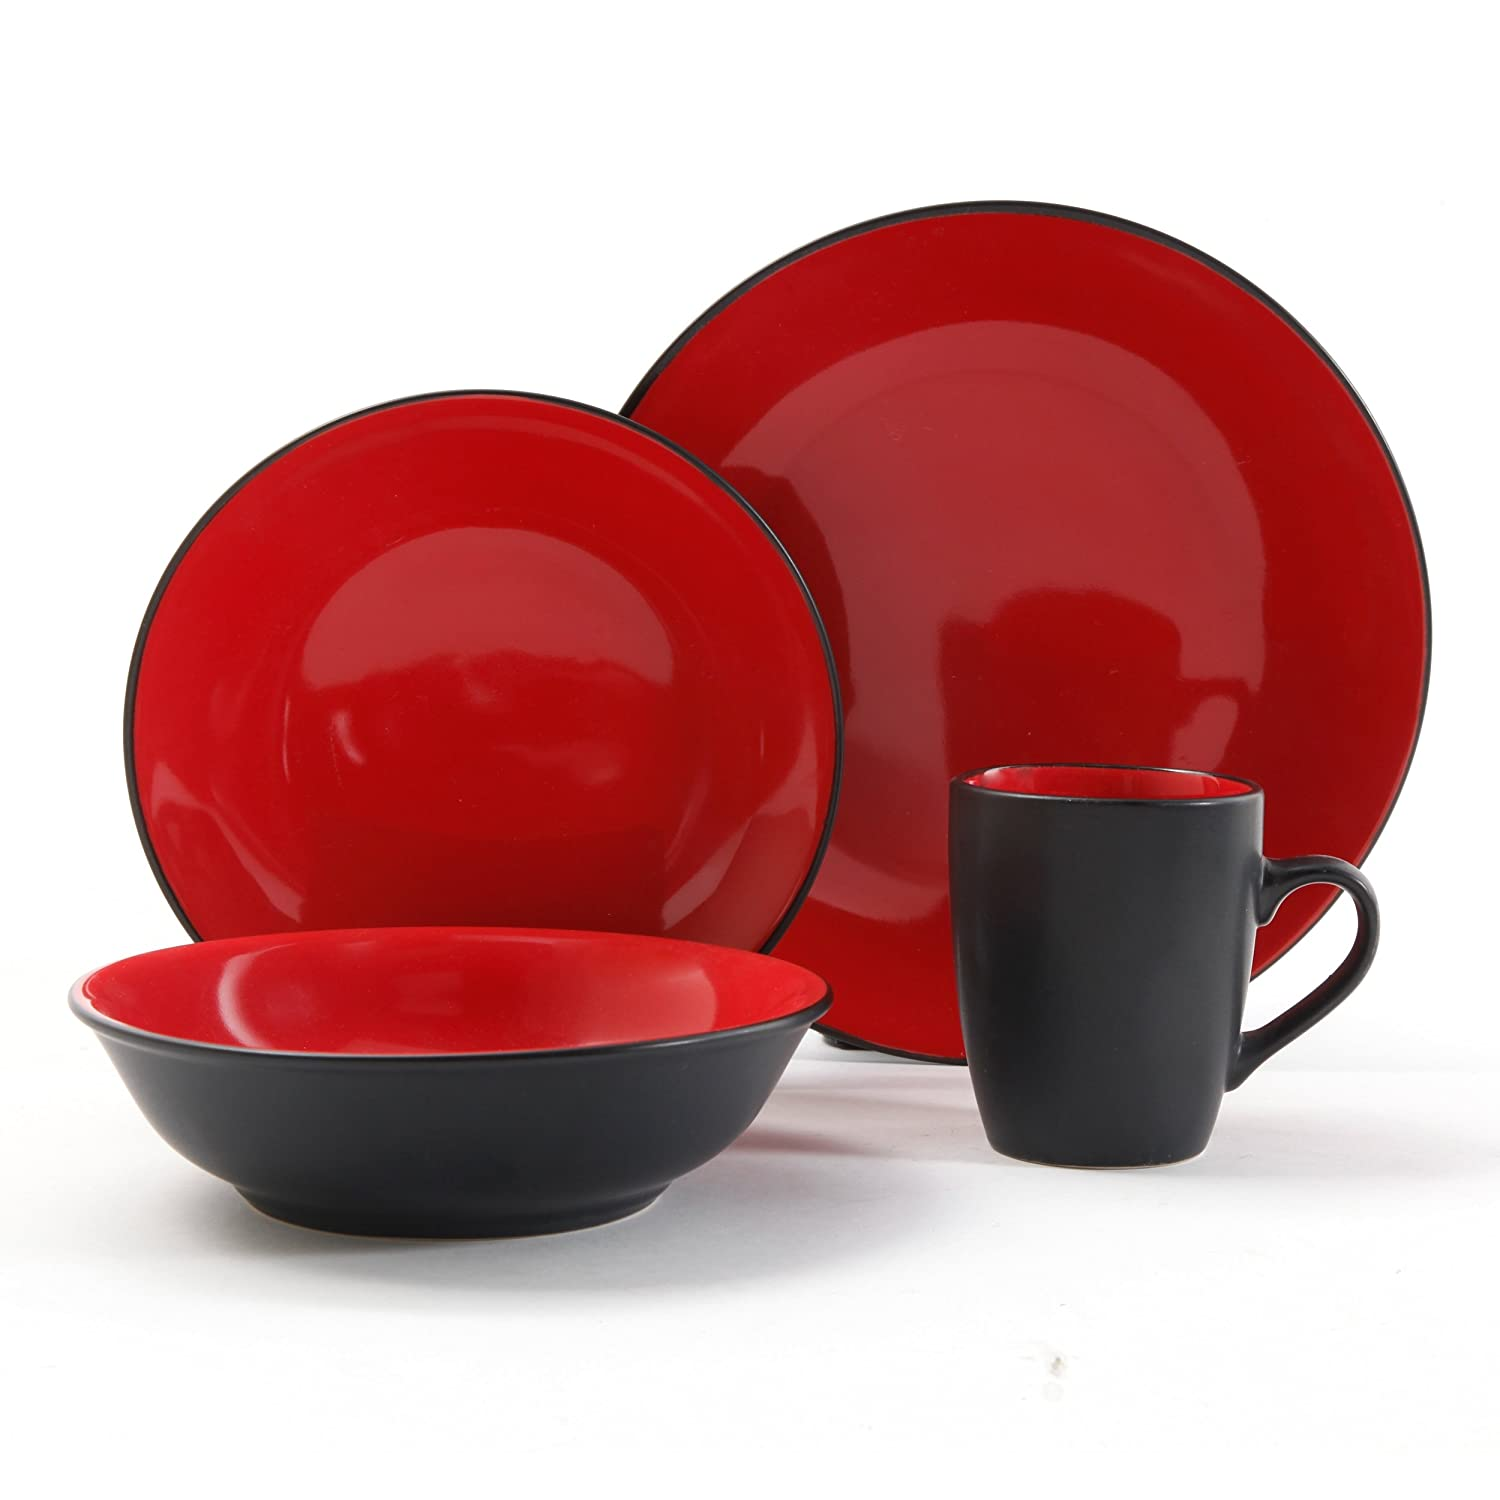 Wonderful Amazon.com | Gibson Vivendi 2 Tone Dinnerware Set, 16 Piece, Red/Black:  Dishes: Dinnerware Sets